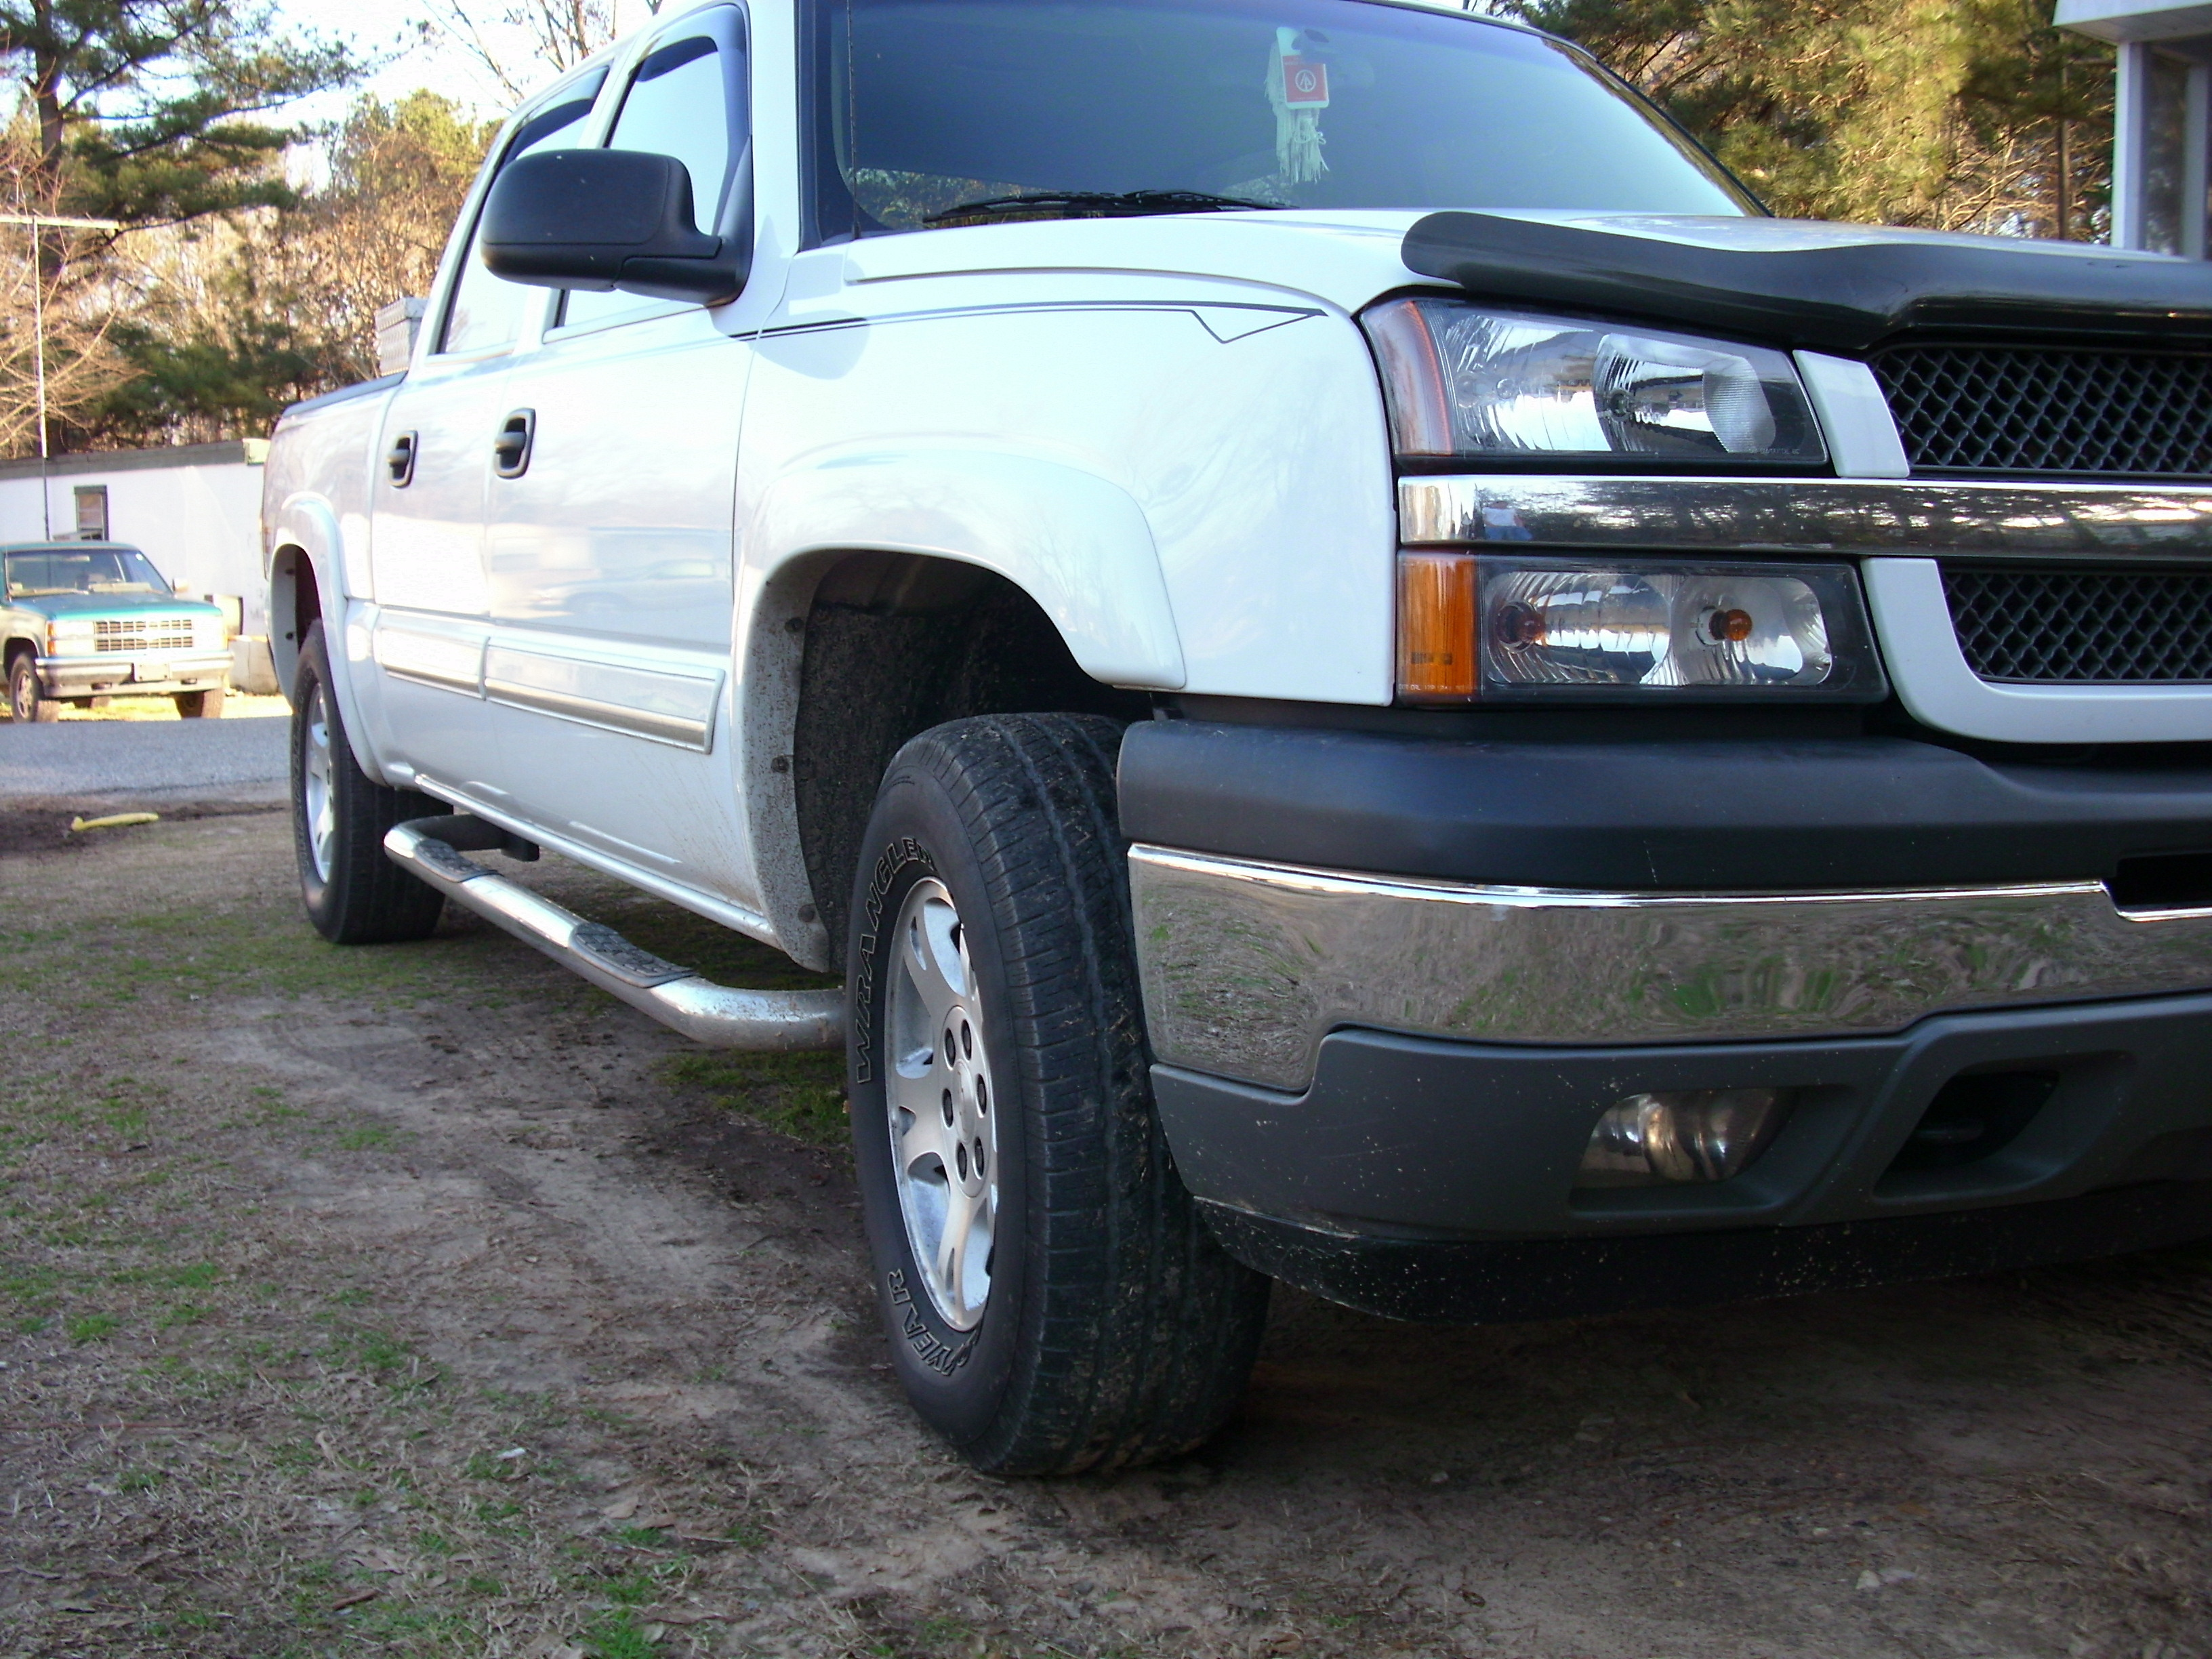 jackloud 2005 chevrolet silverado 1500 regular cab specs photos modification info at cardomain. Black Bedroom Furniture Sets. Home Design Ideas